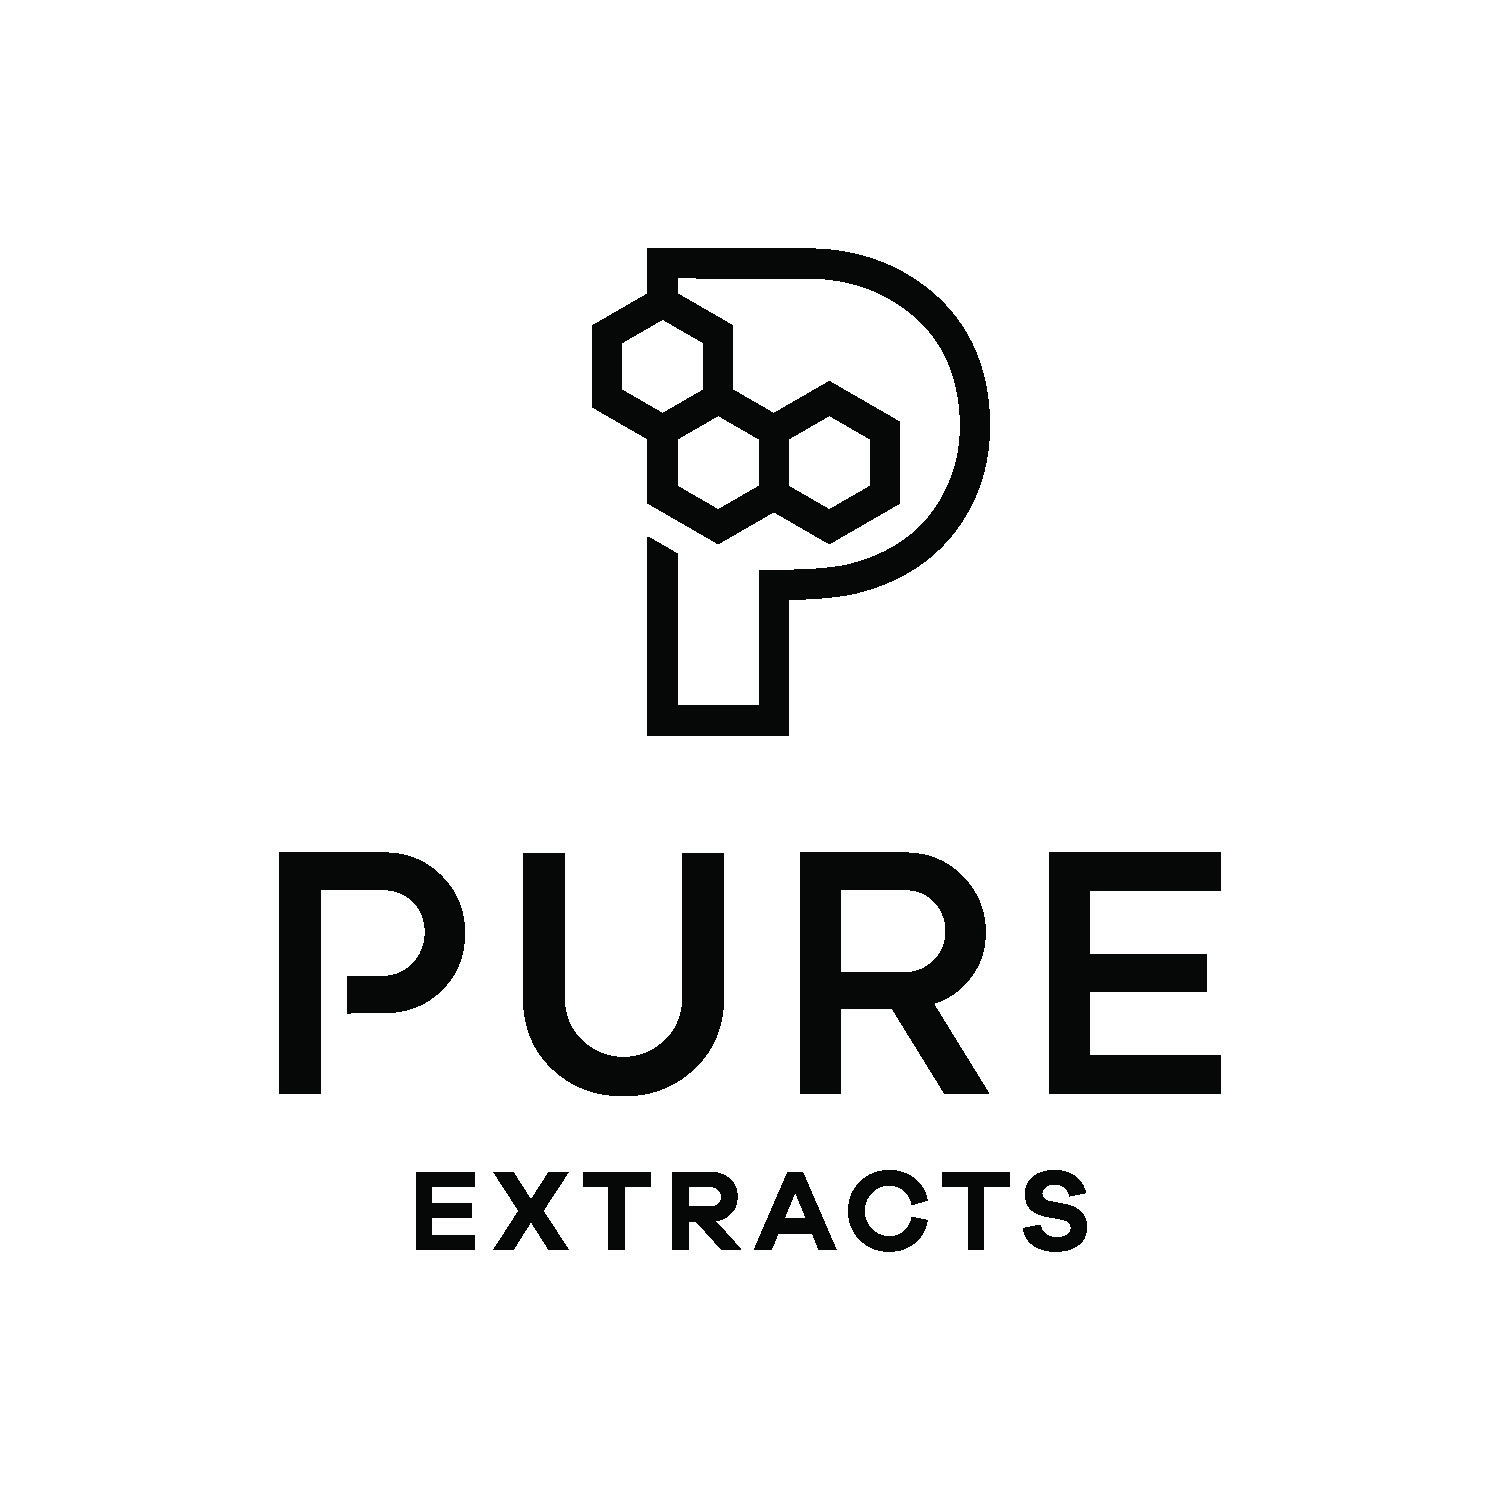 REPEAT -- Pure Extracts Commences Build-Out of Facility in Preparation for Mushroom Extraction and Dealer's Licence